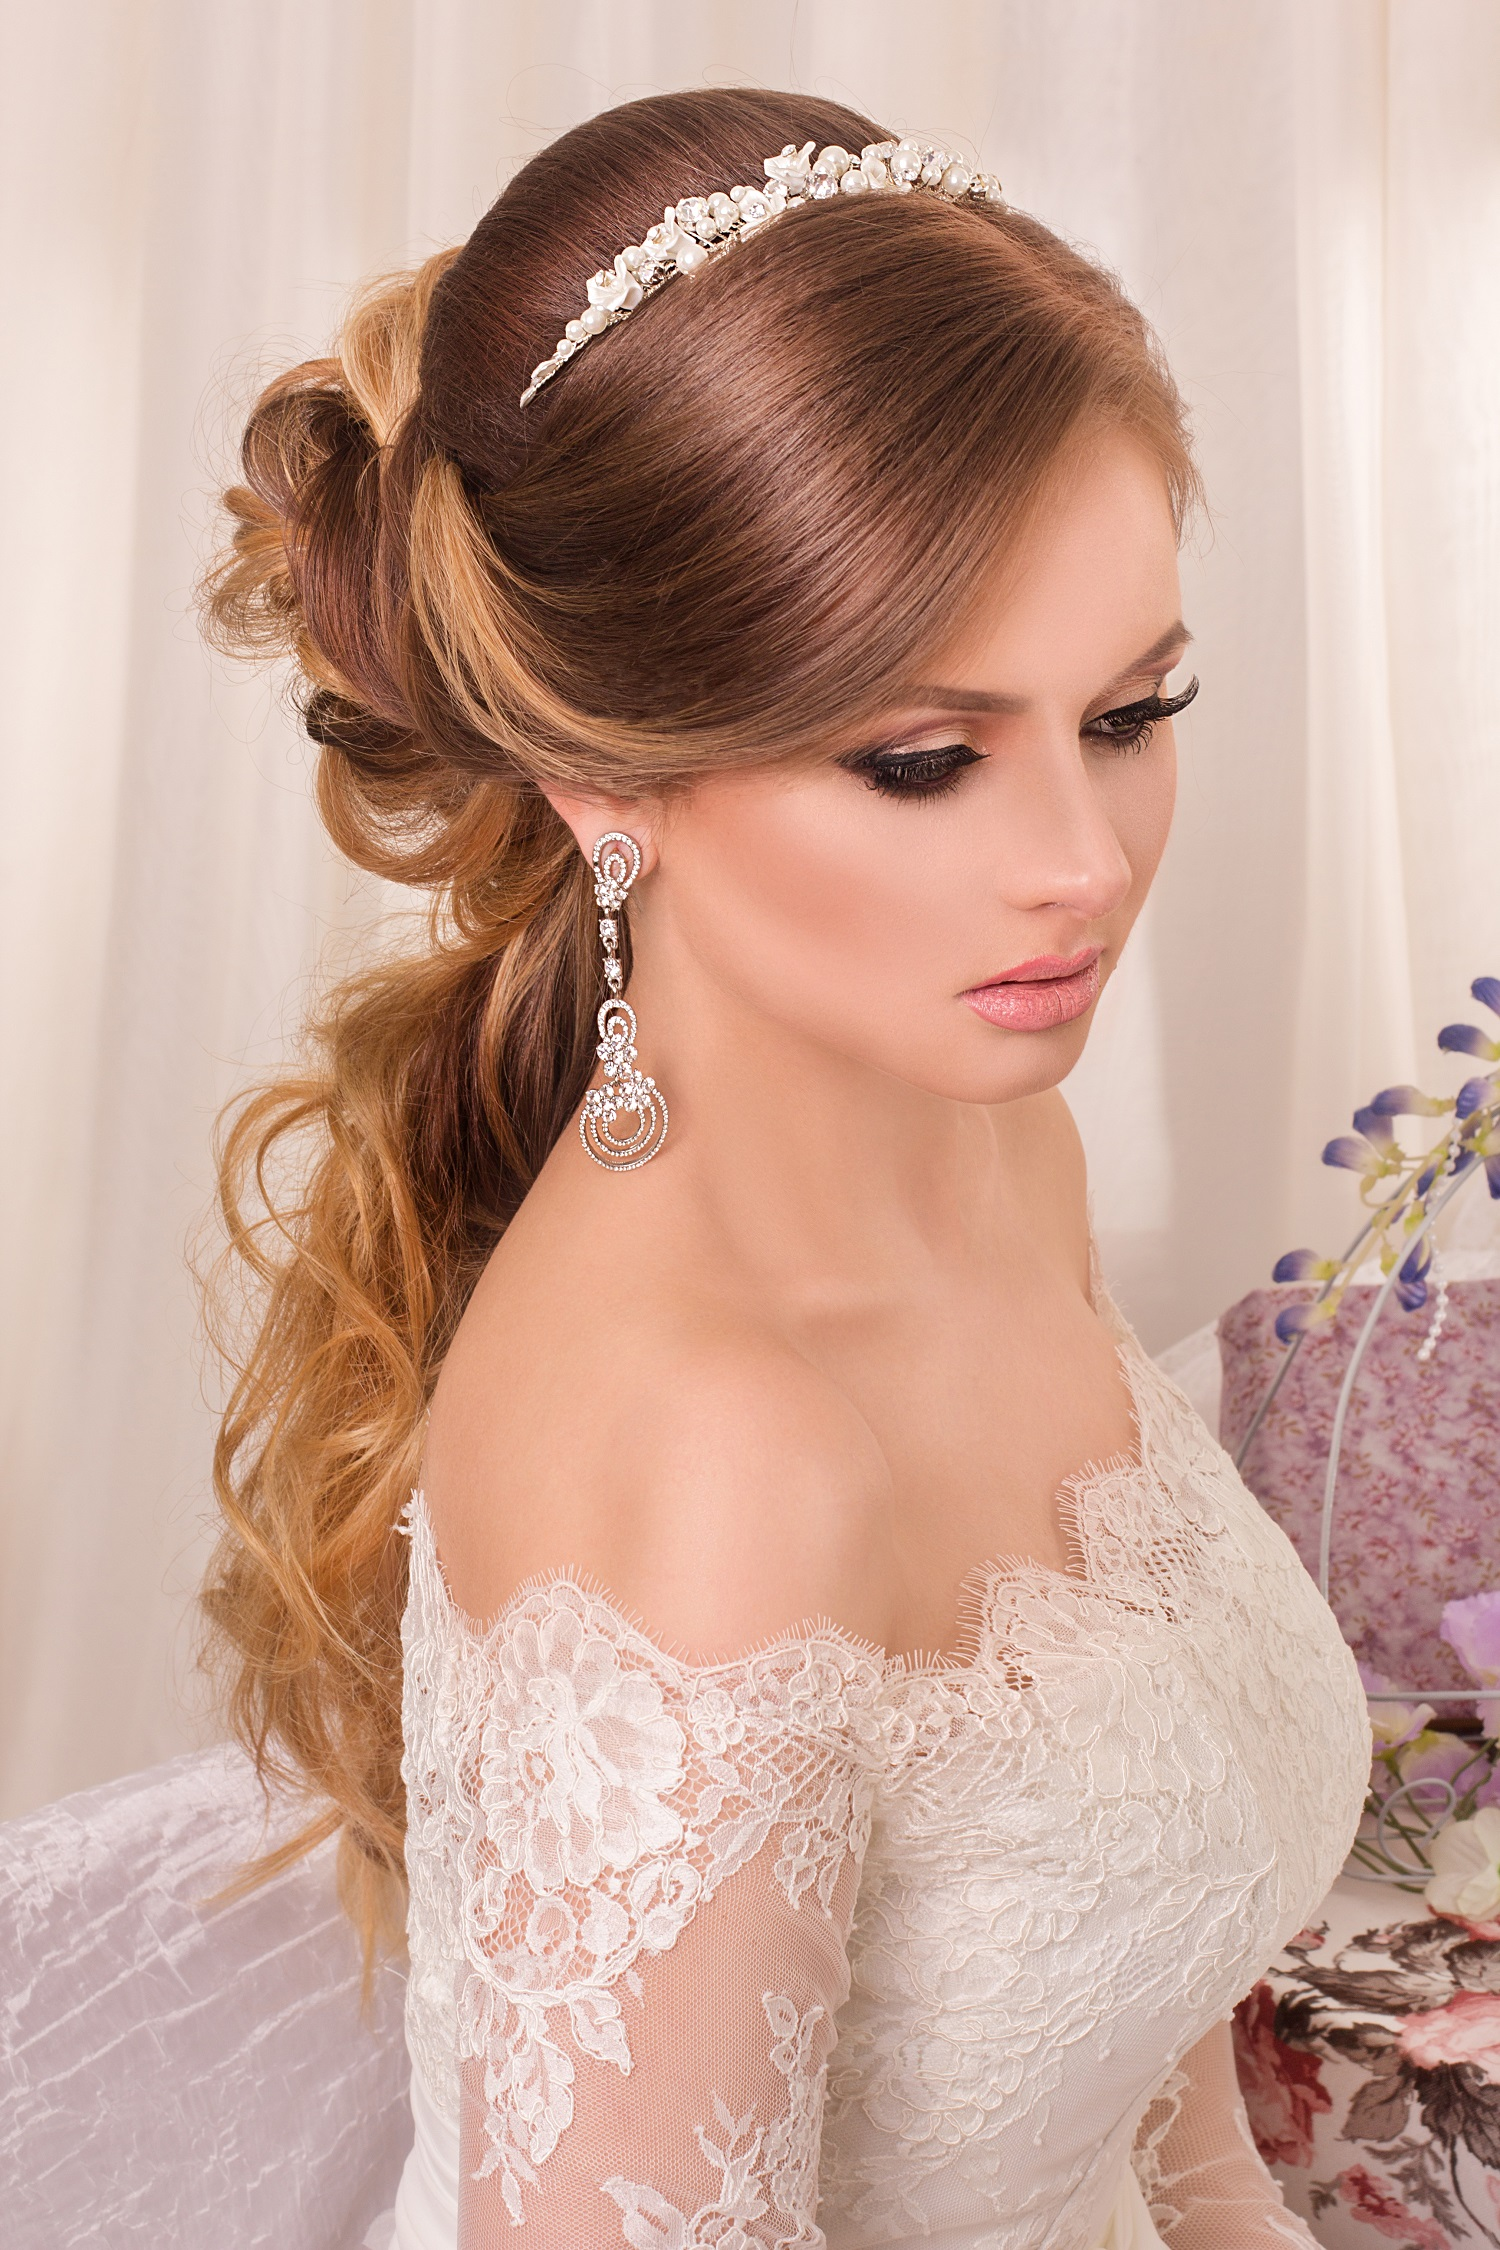 One wedding shoulder dress hair forecasting to wear for autumn in 2019